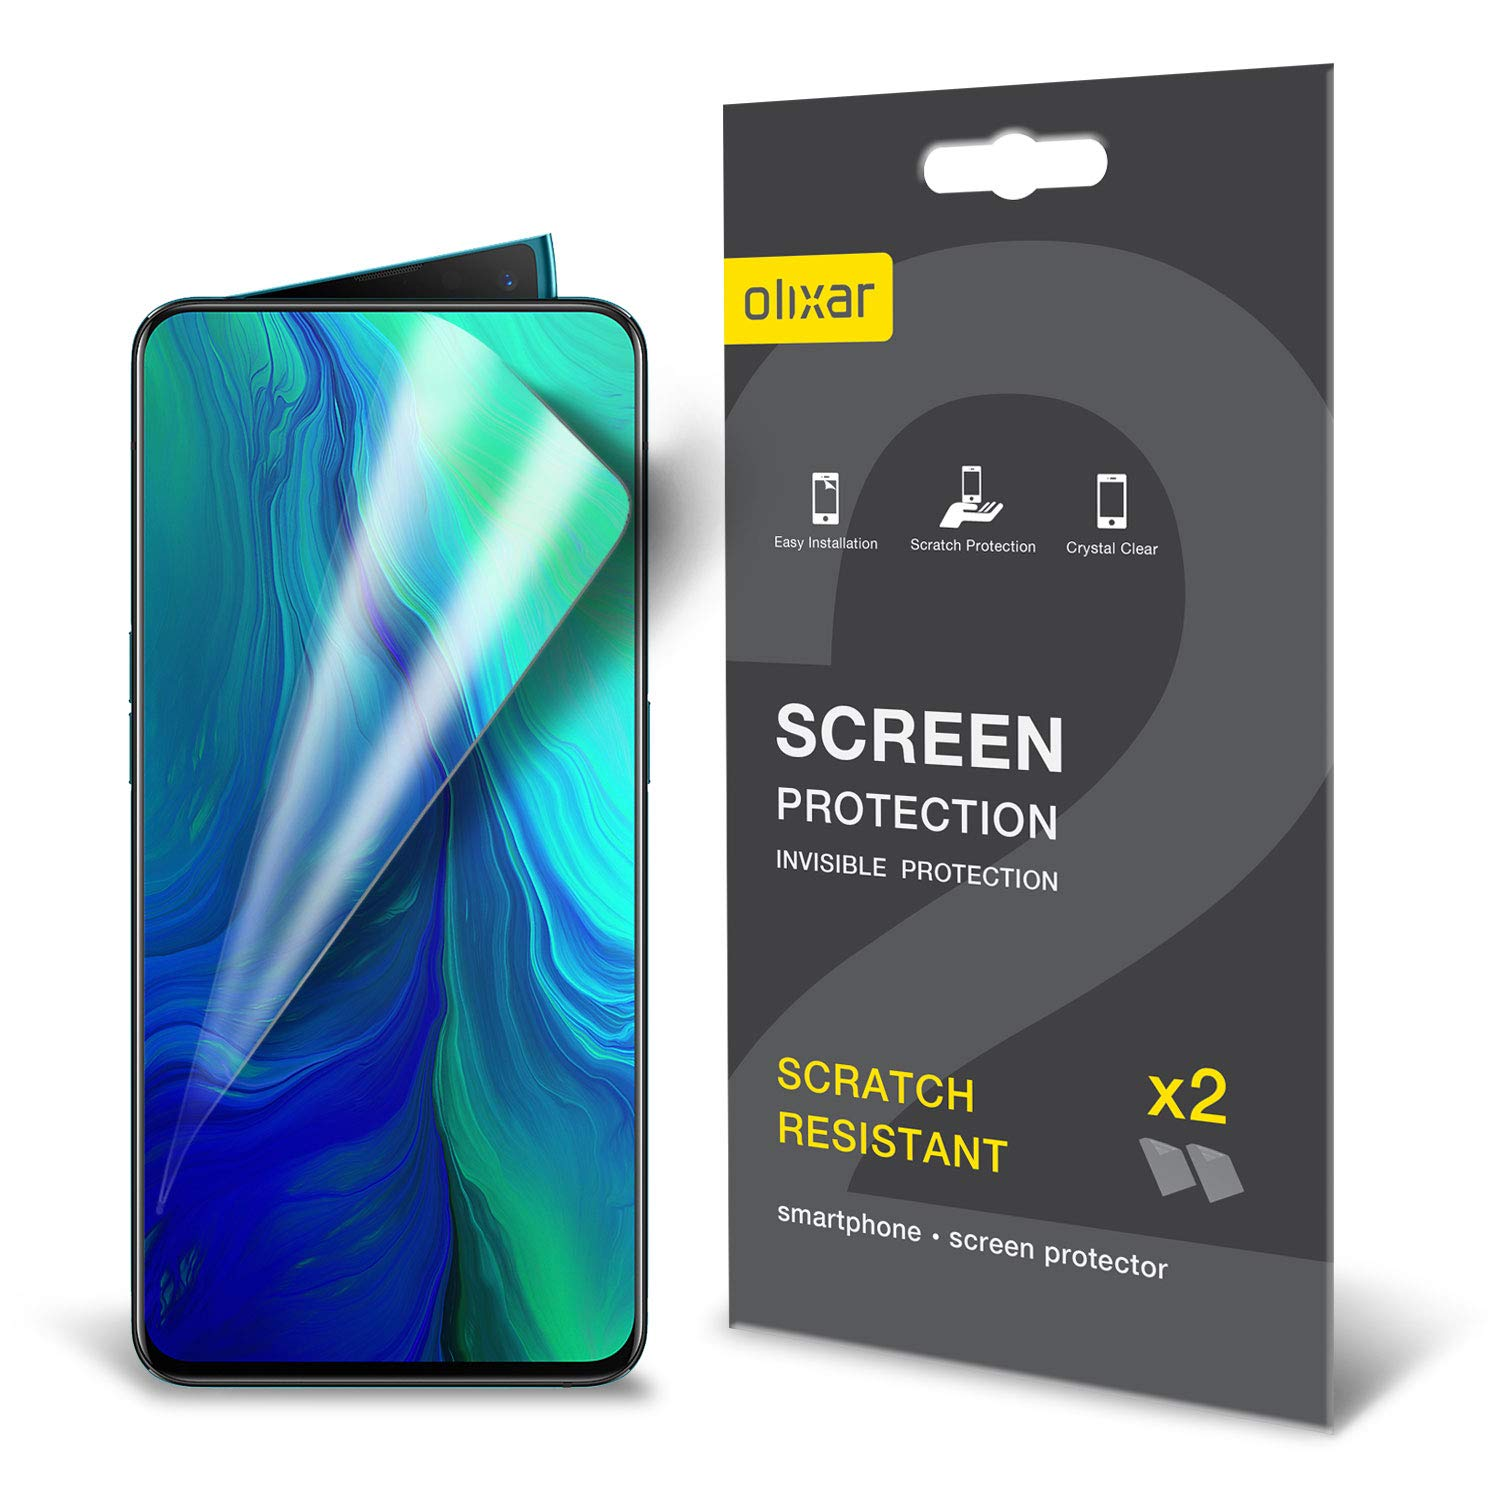 Olixar for Oppo Reno 10x Zoom Screen Protector - Film Protection - Case Friendly - Easy Application Card and Cleaning Cloth Included - 2 Pack